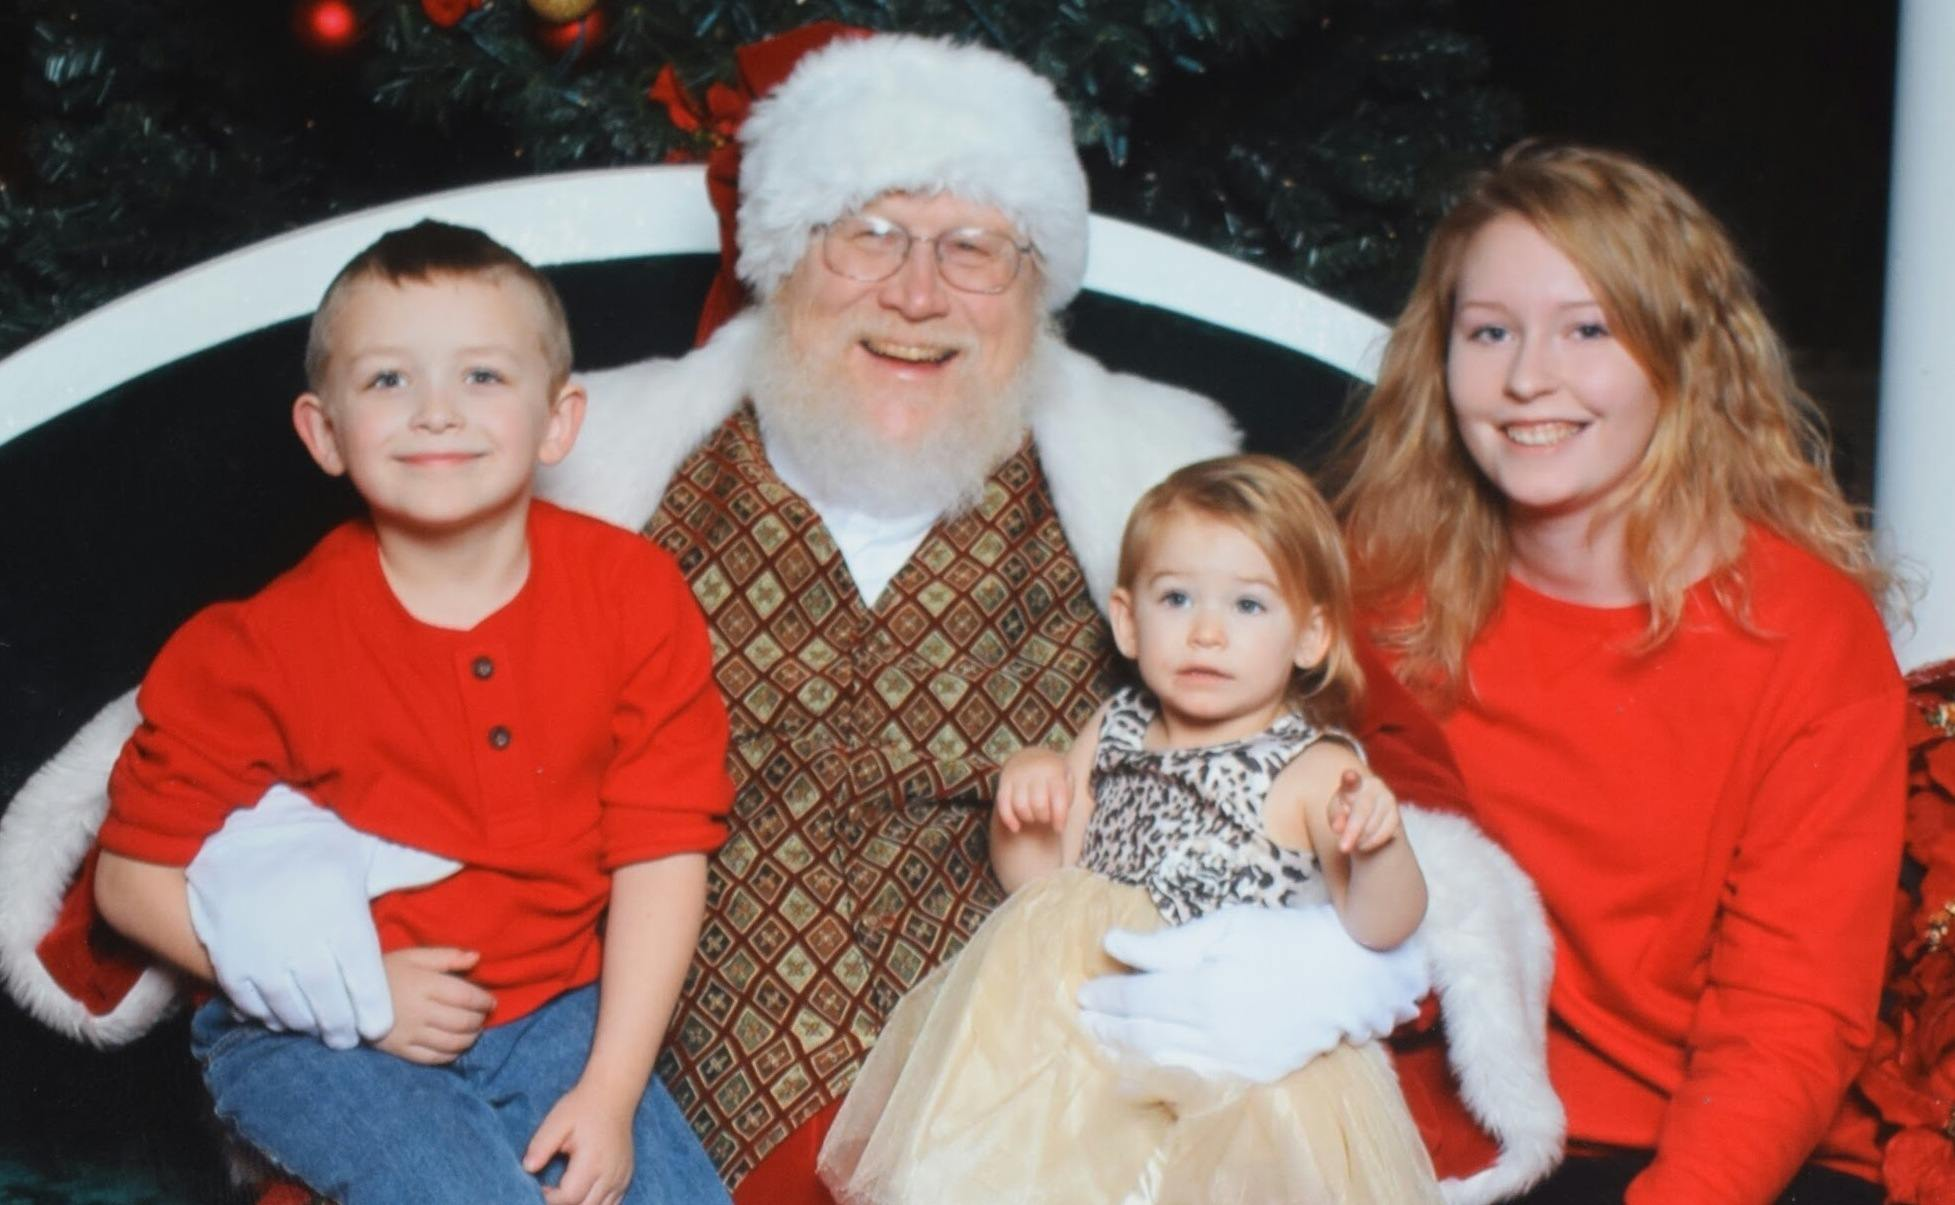 German exchange student and young host siblings with Santa Claus